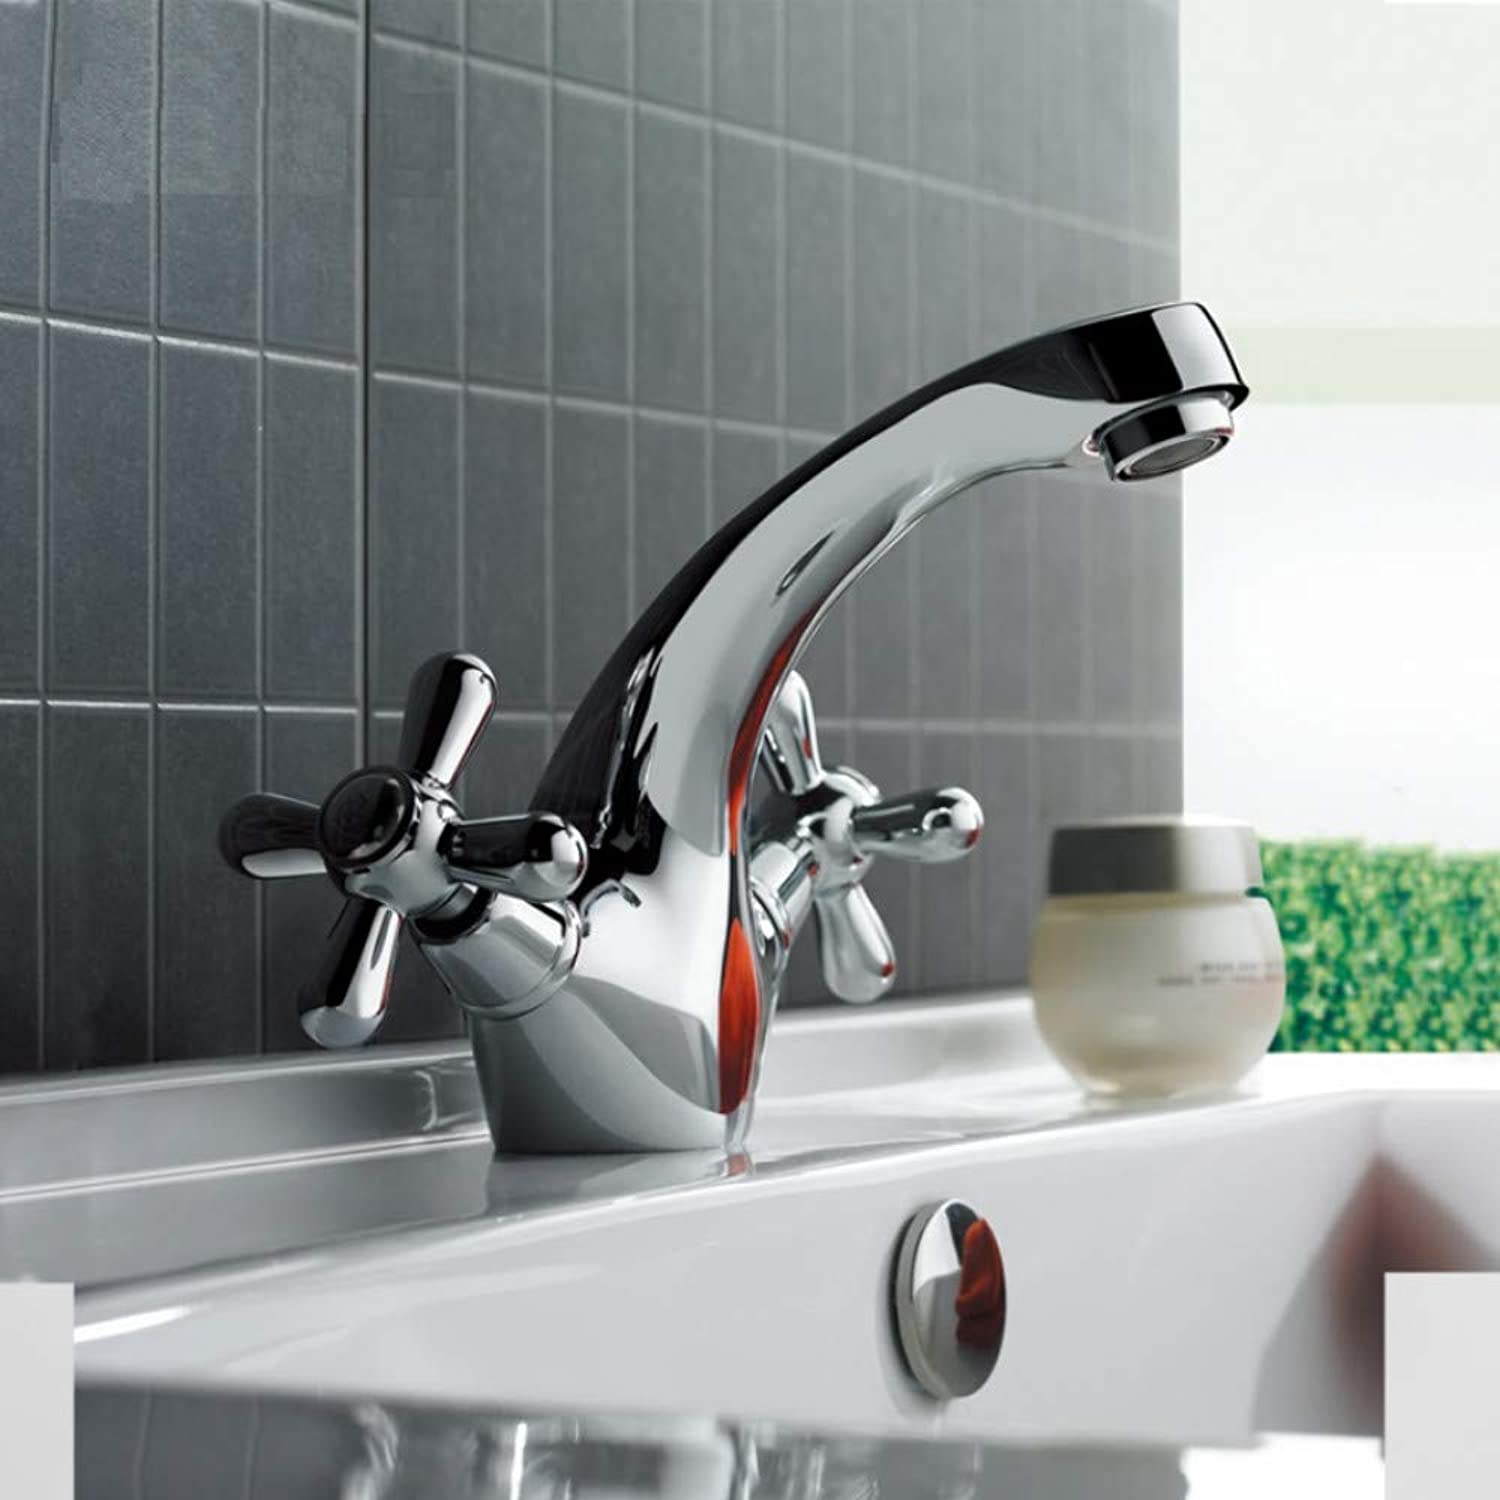 Mzdpp Classic Silver Bathroom Basin Faucet Mixer Toilet Faucet Double Handle Bath Tap Hot and Cold Water Mixer Control